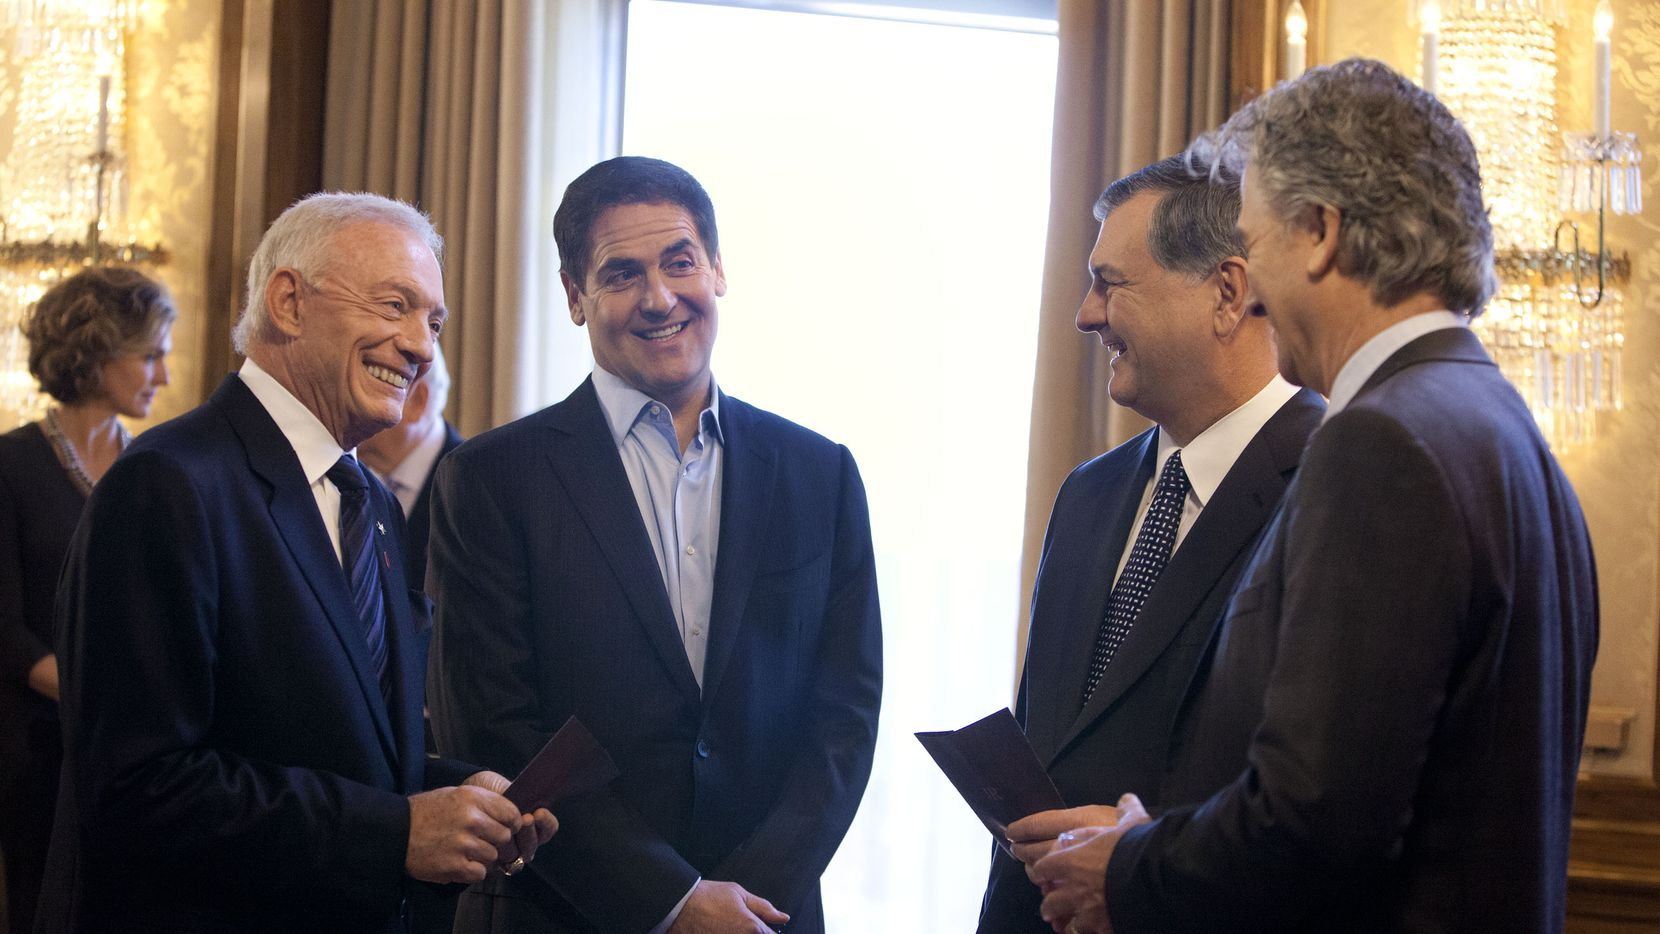 Jerry Jones, Mark Cuban, Mayor Mike Rawlings and Bobby Ewing say their adioses to J.R. on an episode of Dallas. (Skip Bolen/TNT)